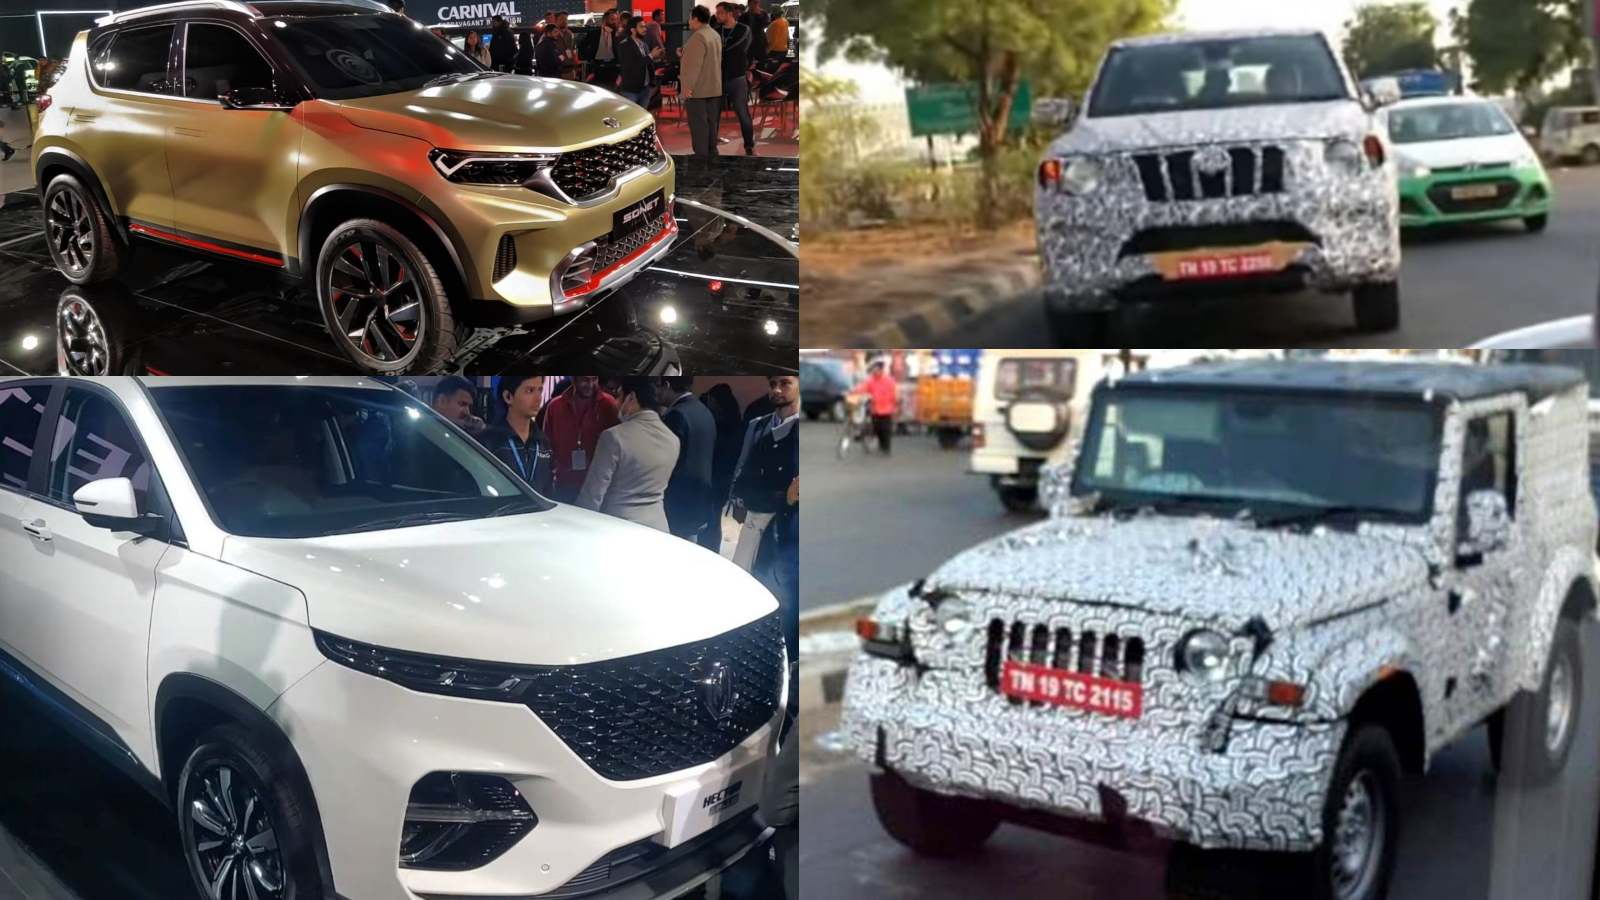 Upcoming Suvs In India In 2020 21 Motoroids